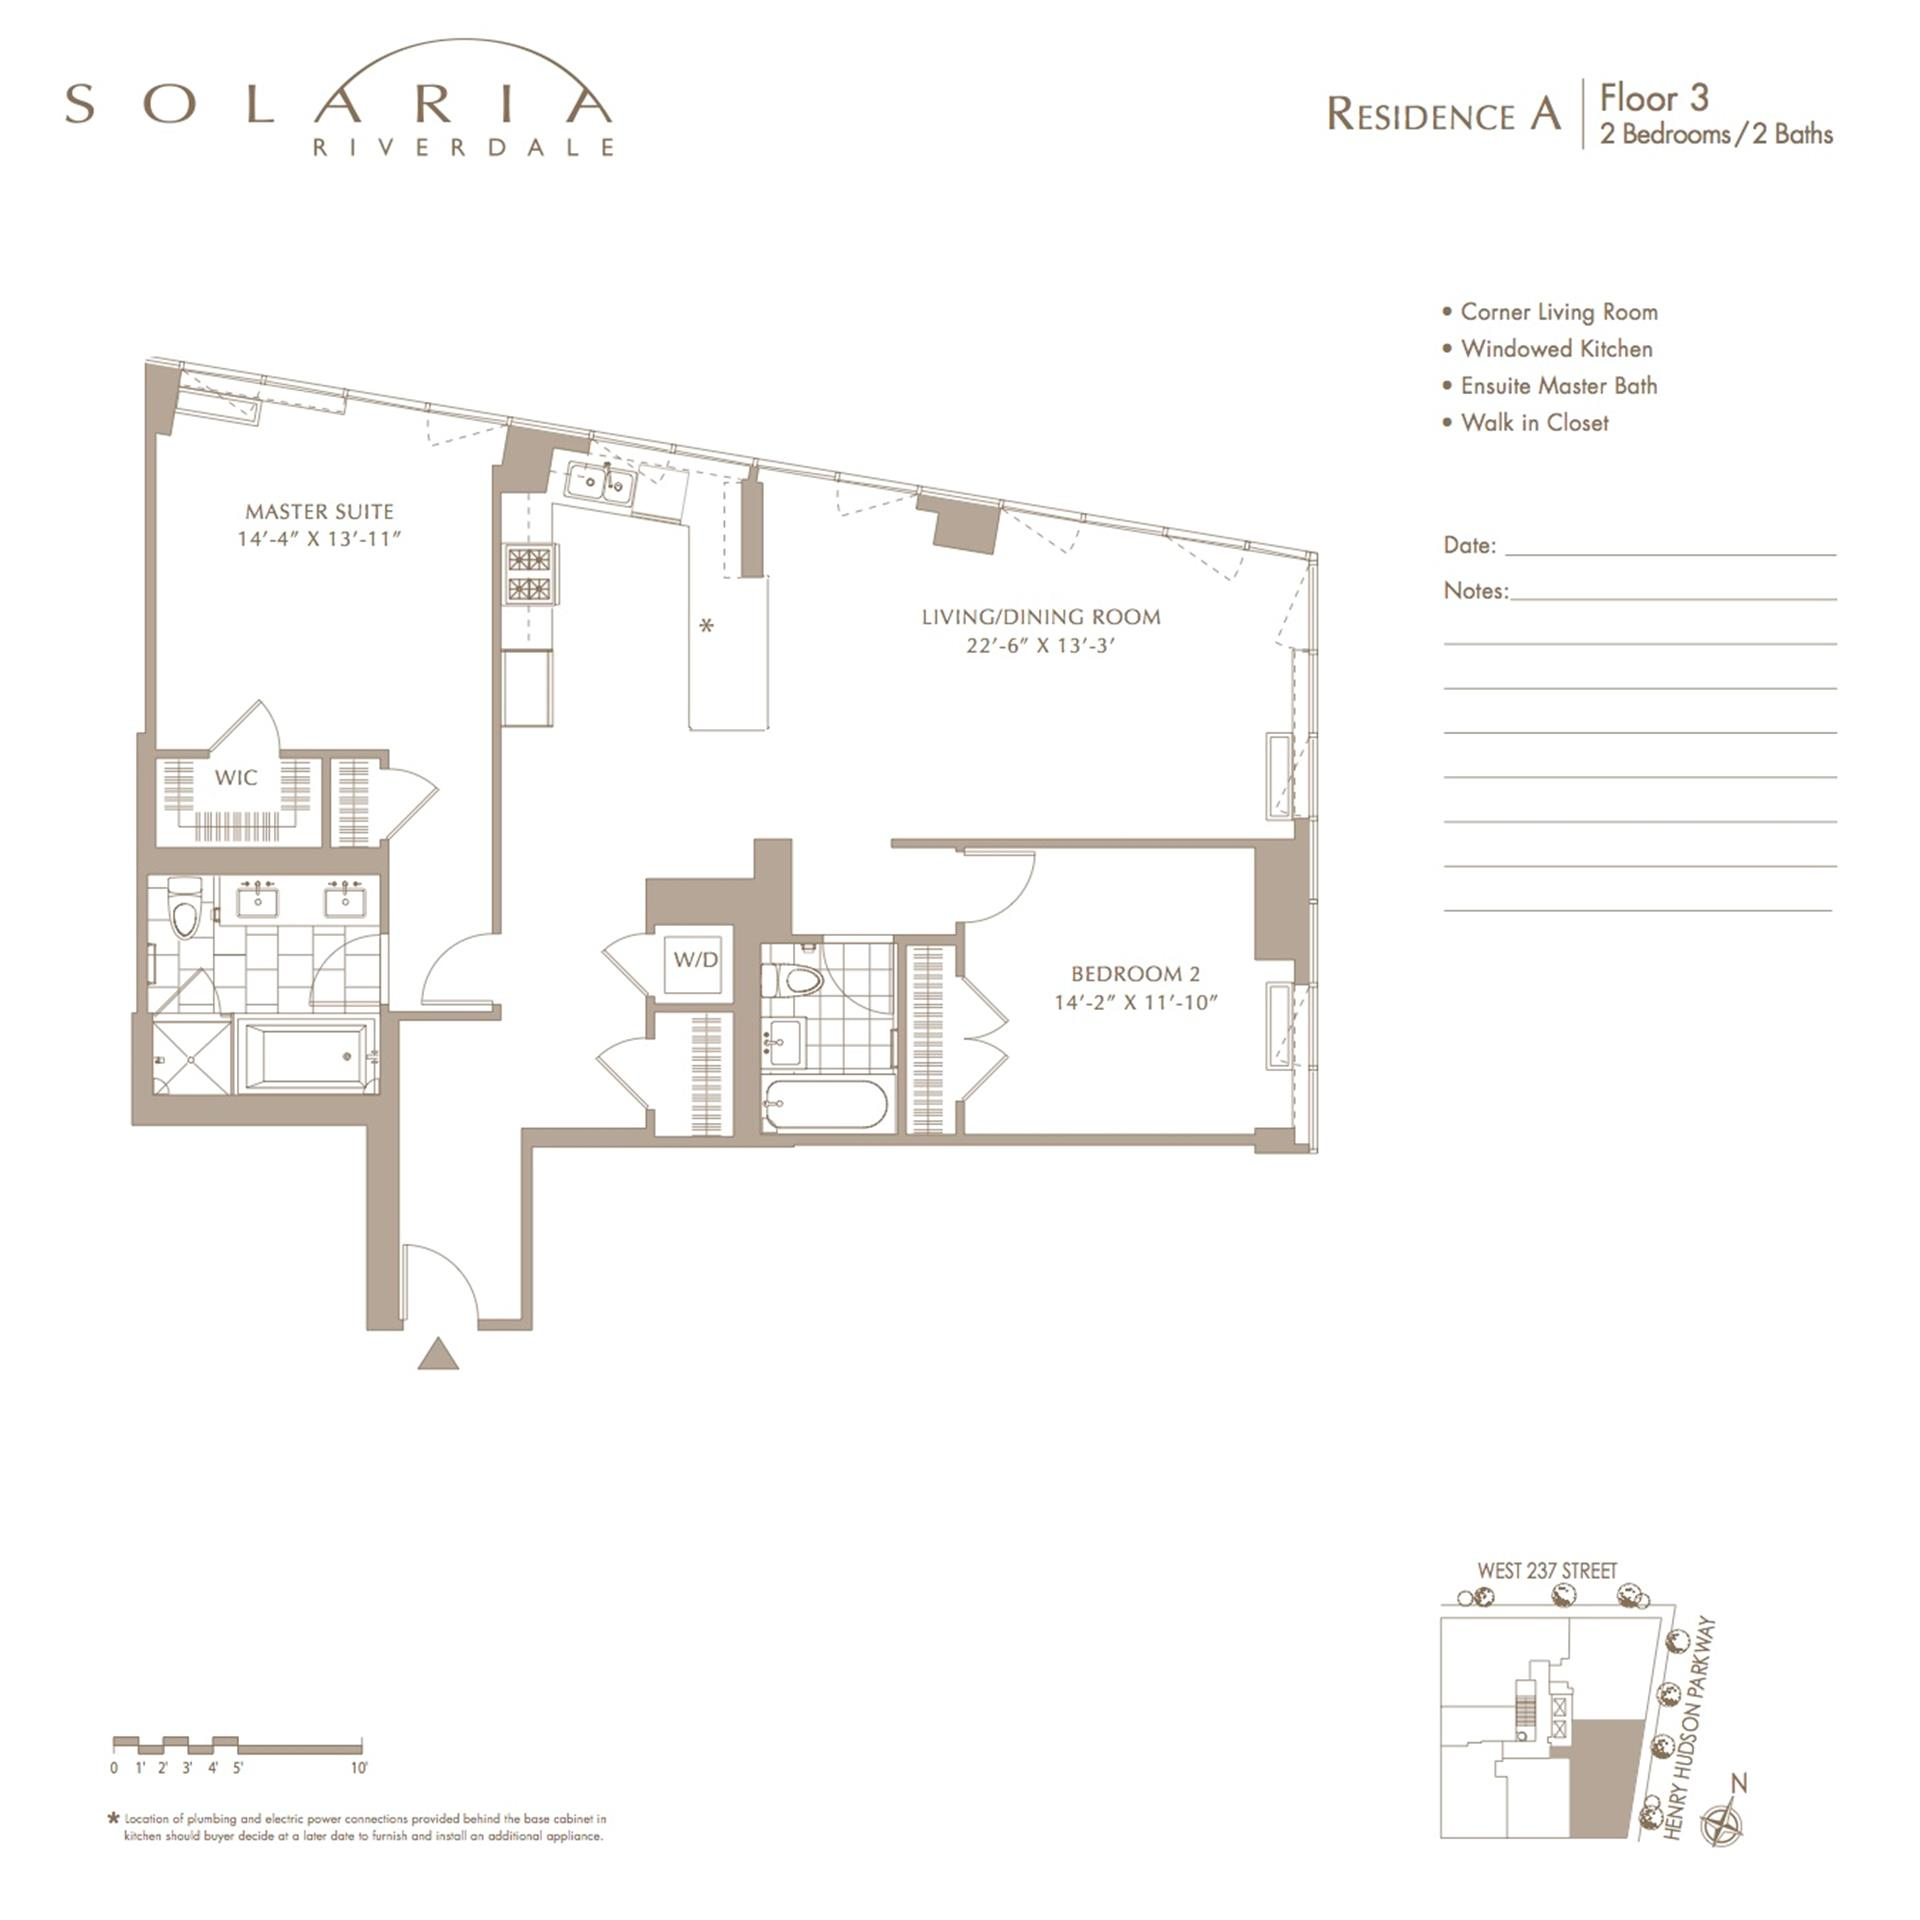 Floor plan of Solaria Riverdale, 640 West 237th St, 3A - Riverdale, New York